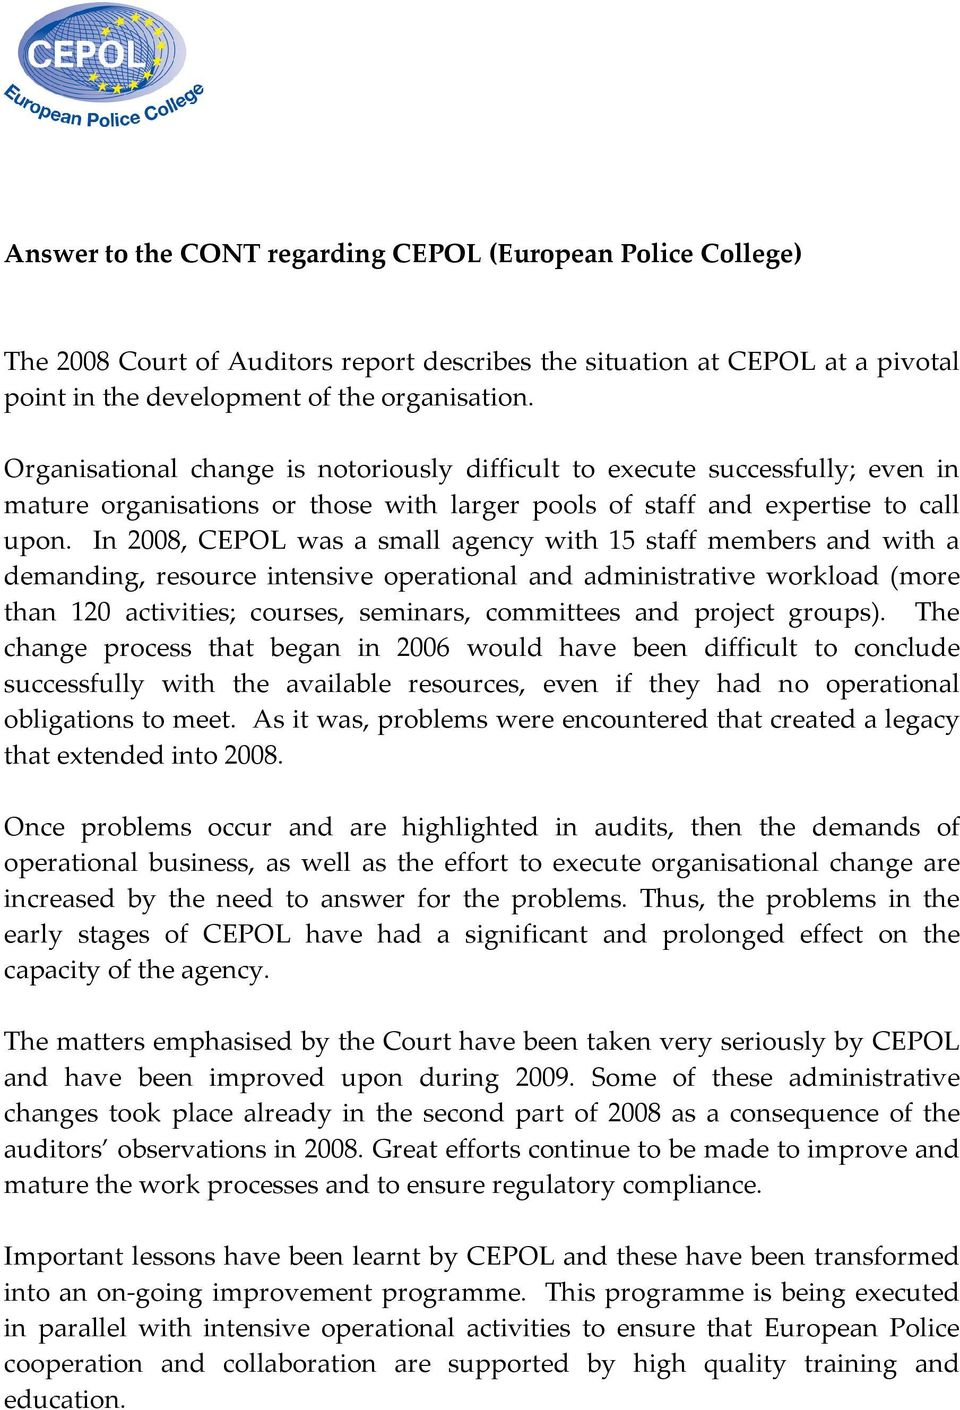 In 2008, CEPOL was a small agency with 15 staff members and with a demanding, resource intensive operational and administrative workload (more than 120 activities; courses, seminars, committees and